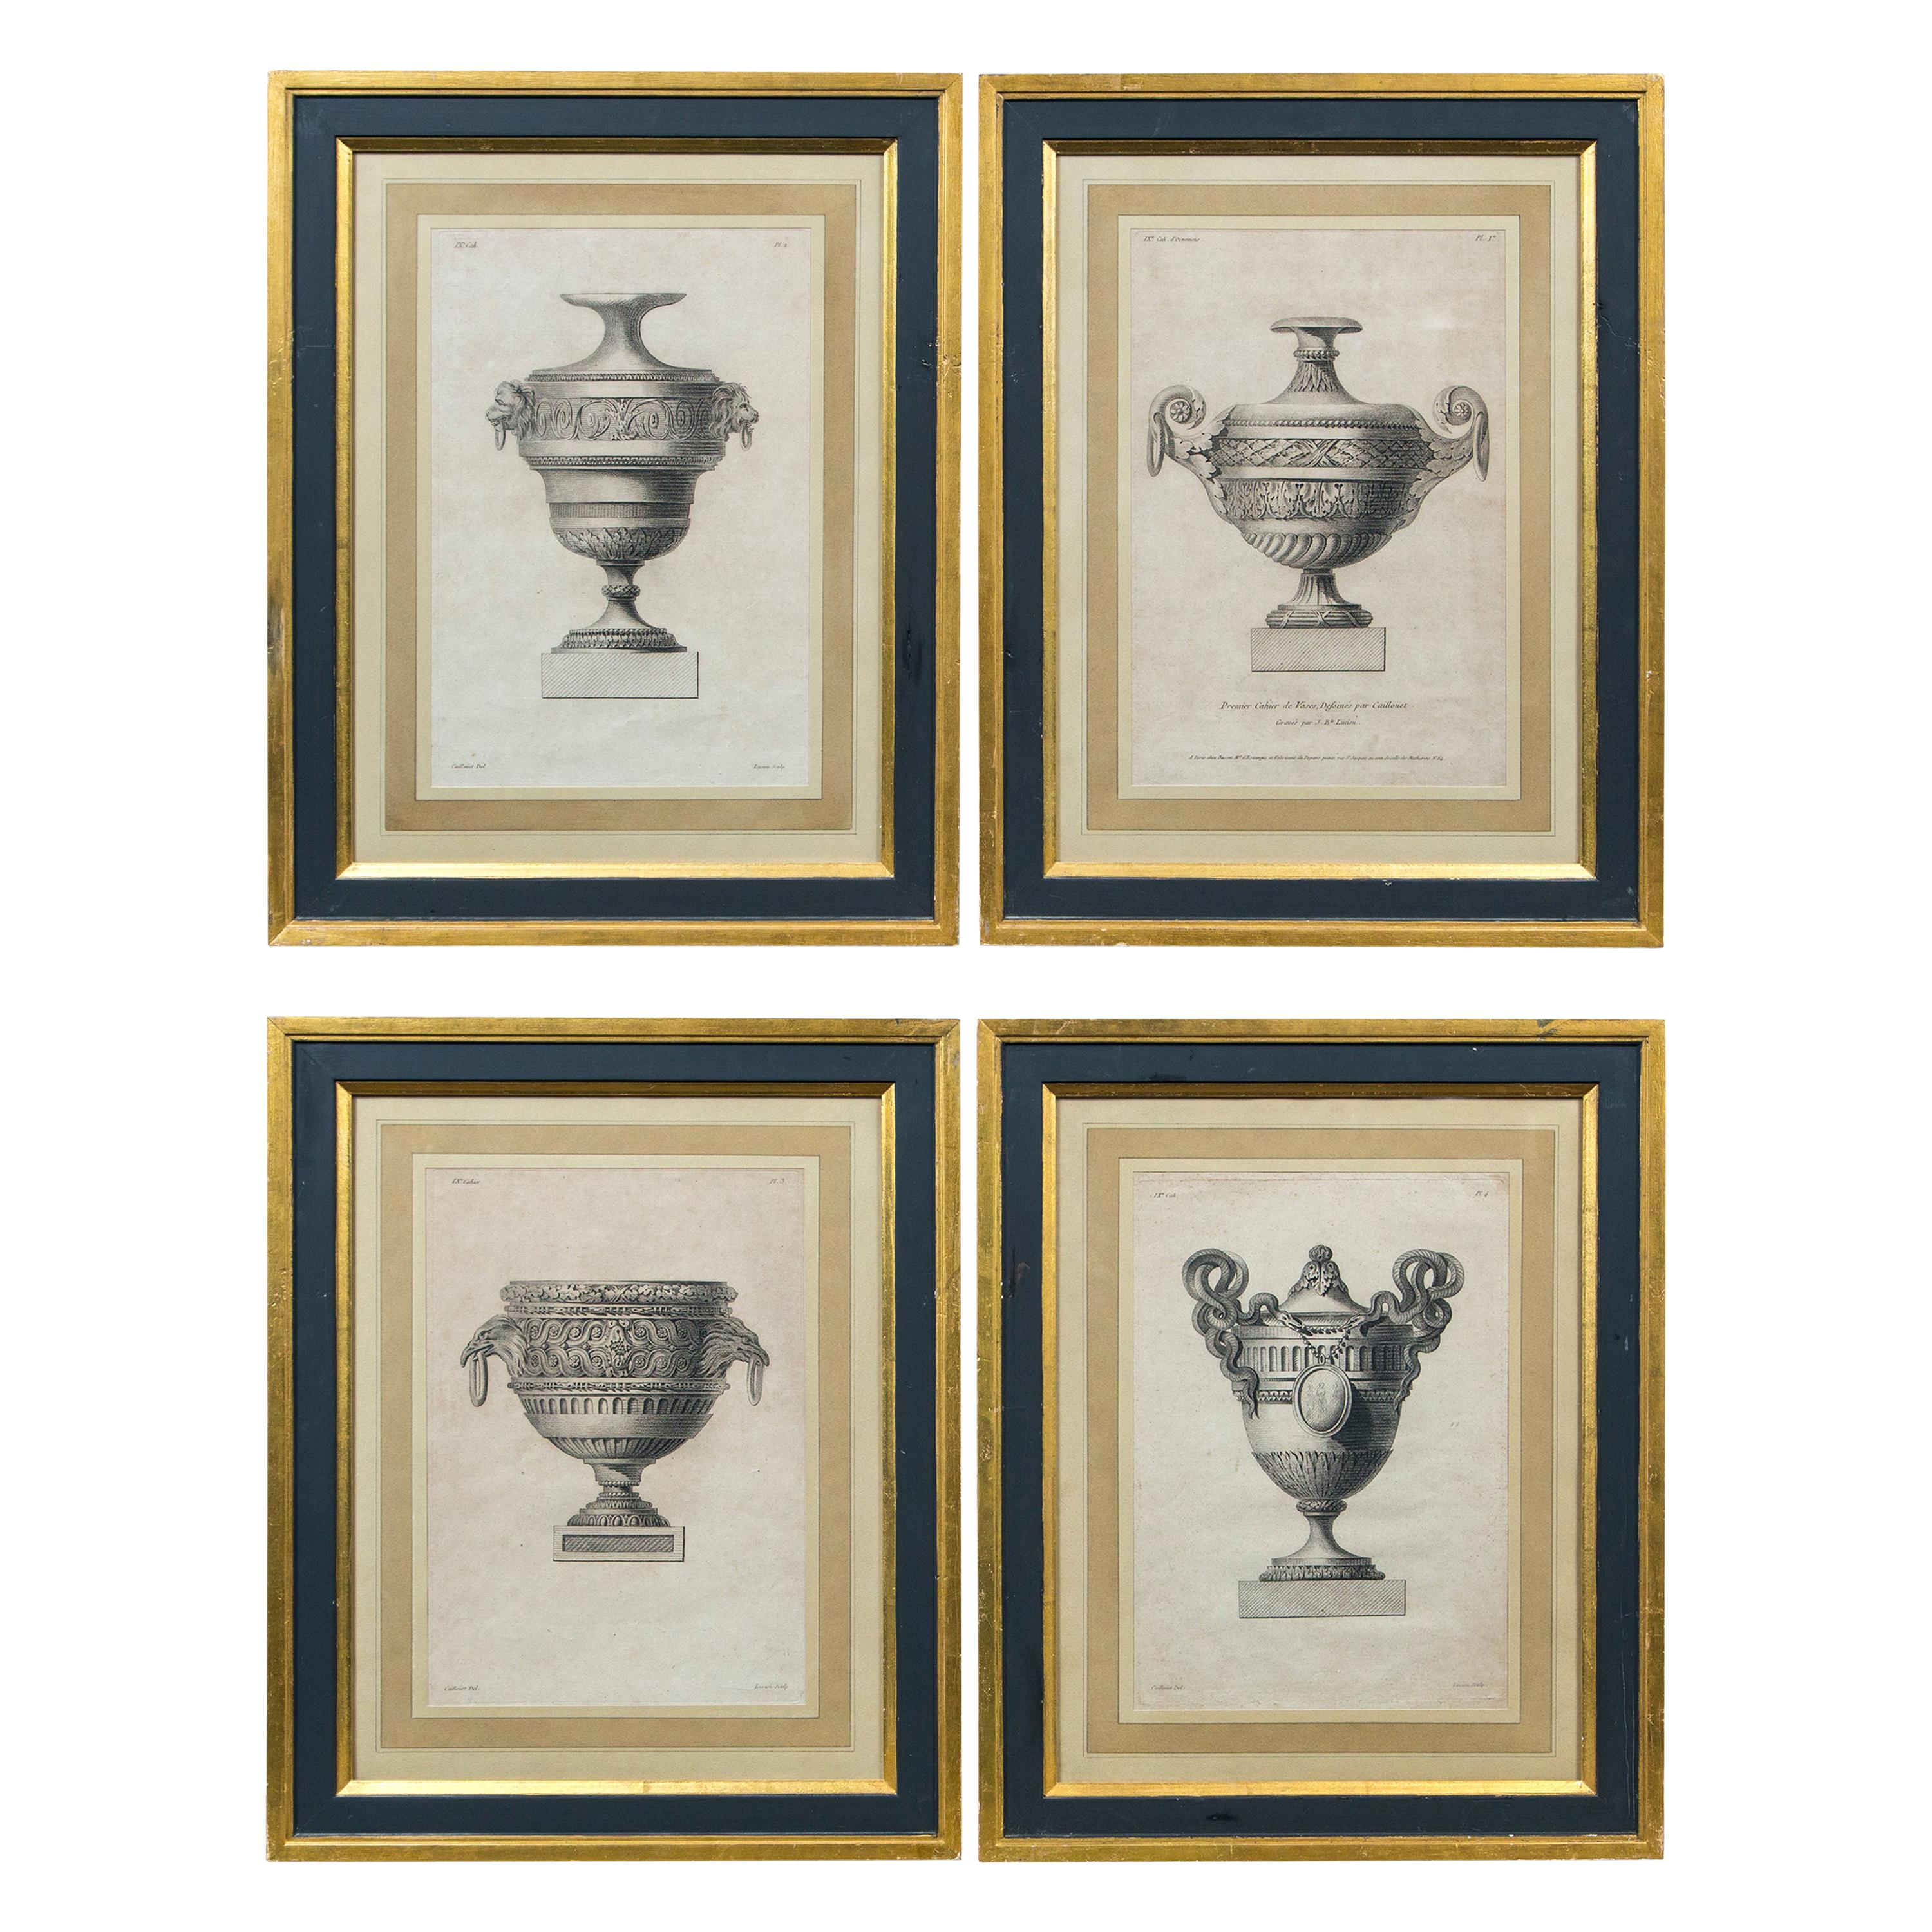 Set of 4 'Vase' Engravings by Andre-Louis Caillouet, France, Late 18th Century